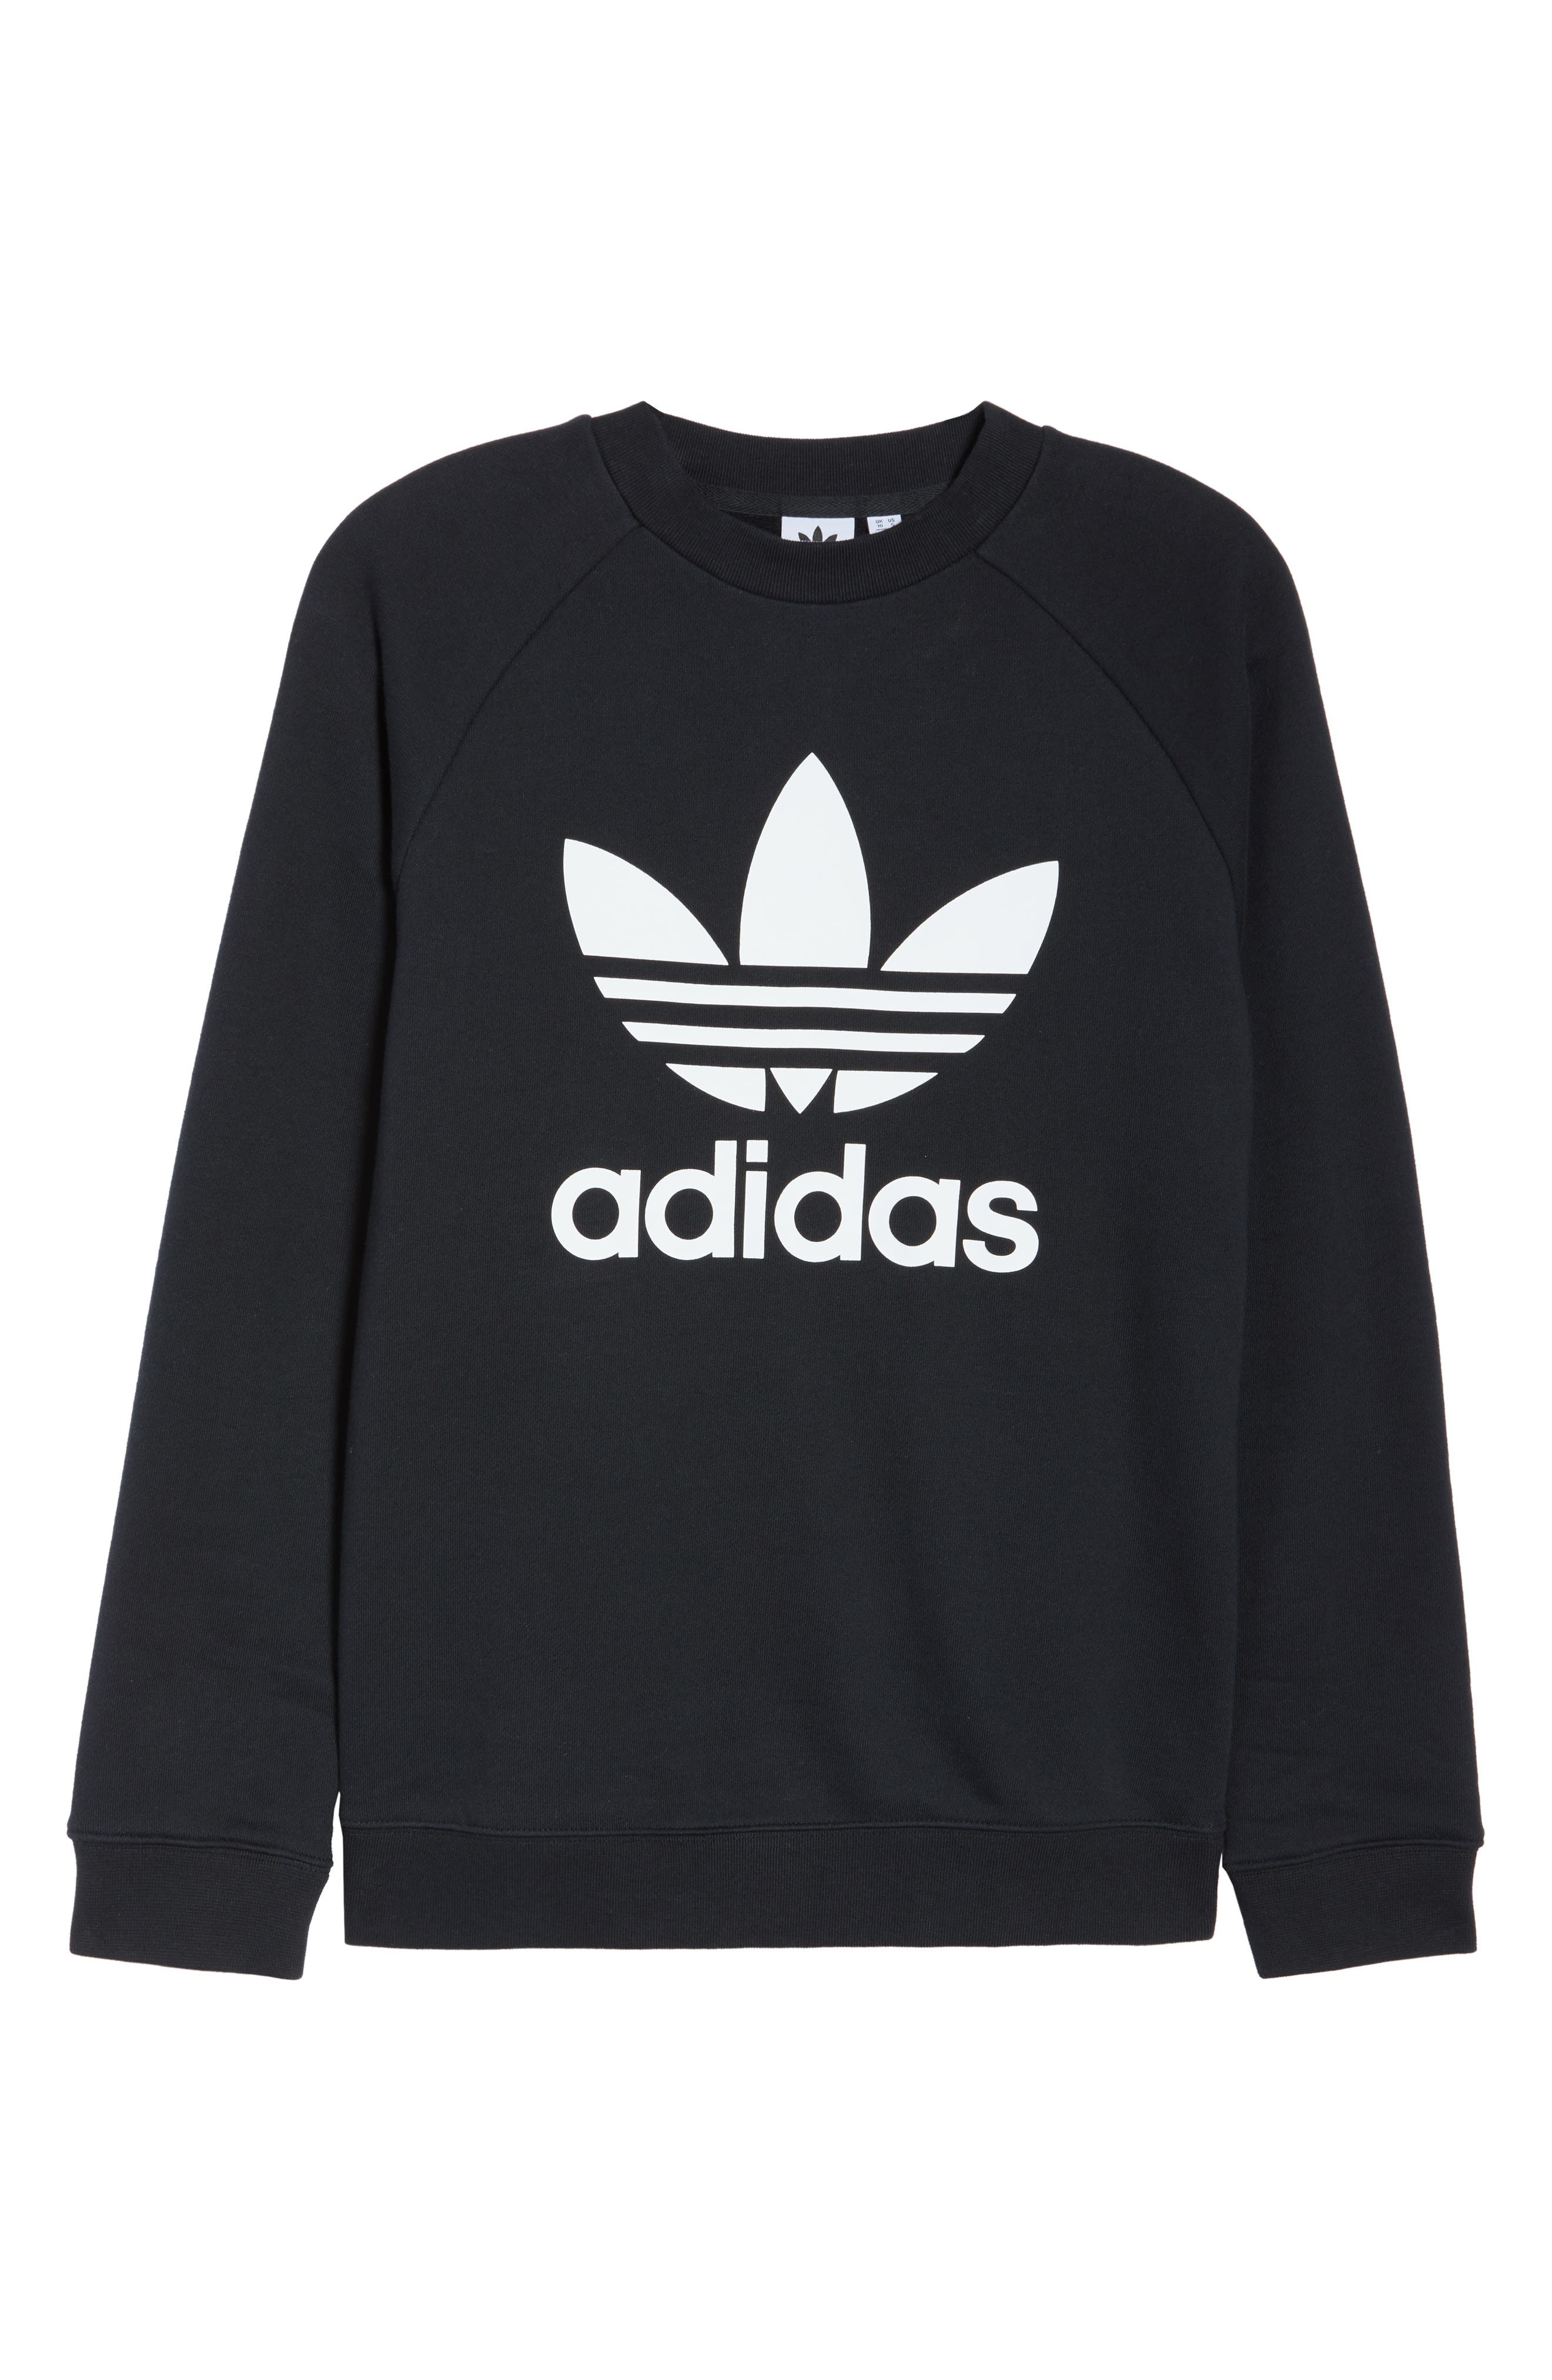 ADIDAS ORIGINALS,                             Trefoil Sweatshirt,                             Alternate thumbnail 7, color,                             BLACK